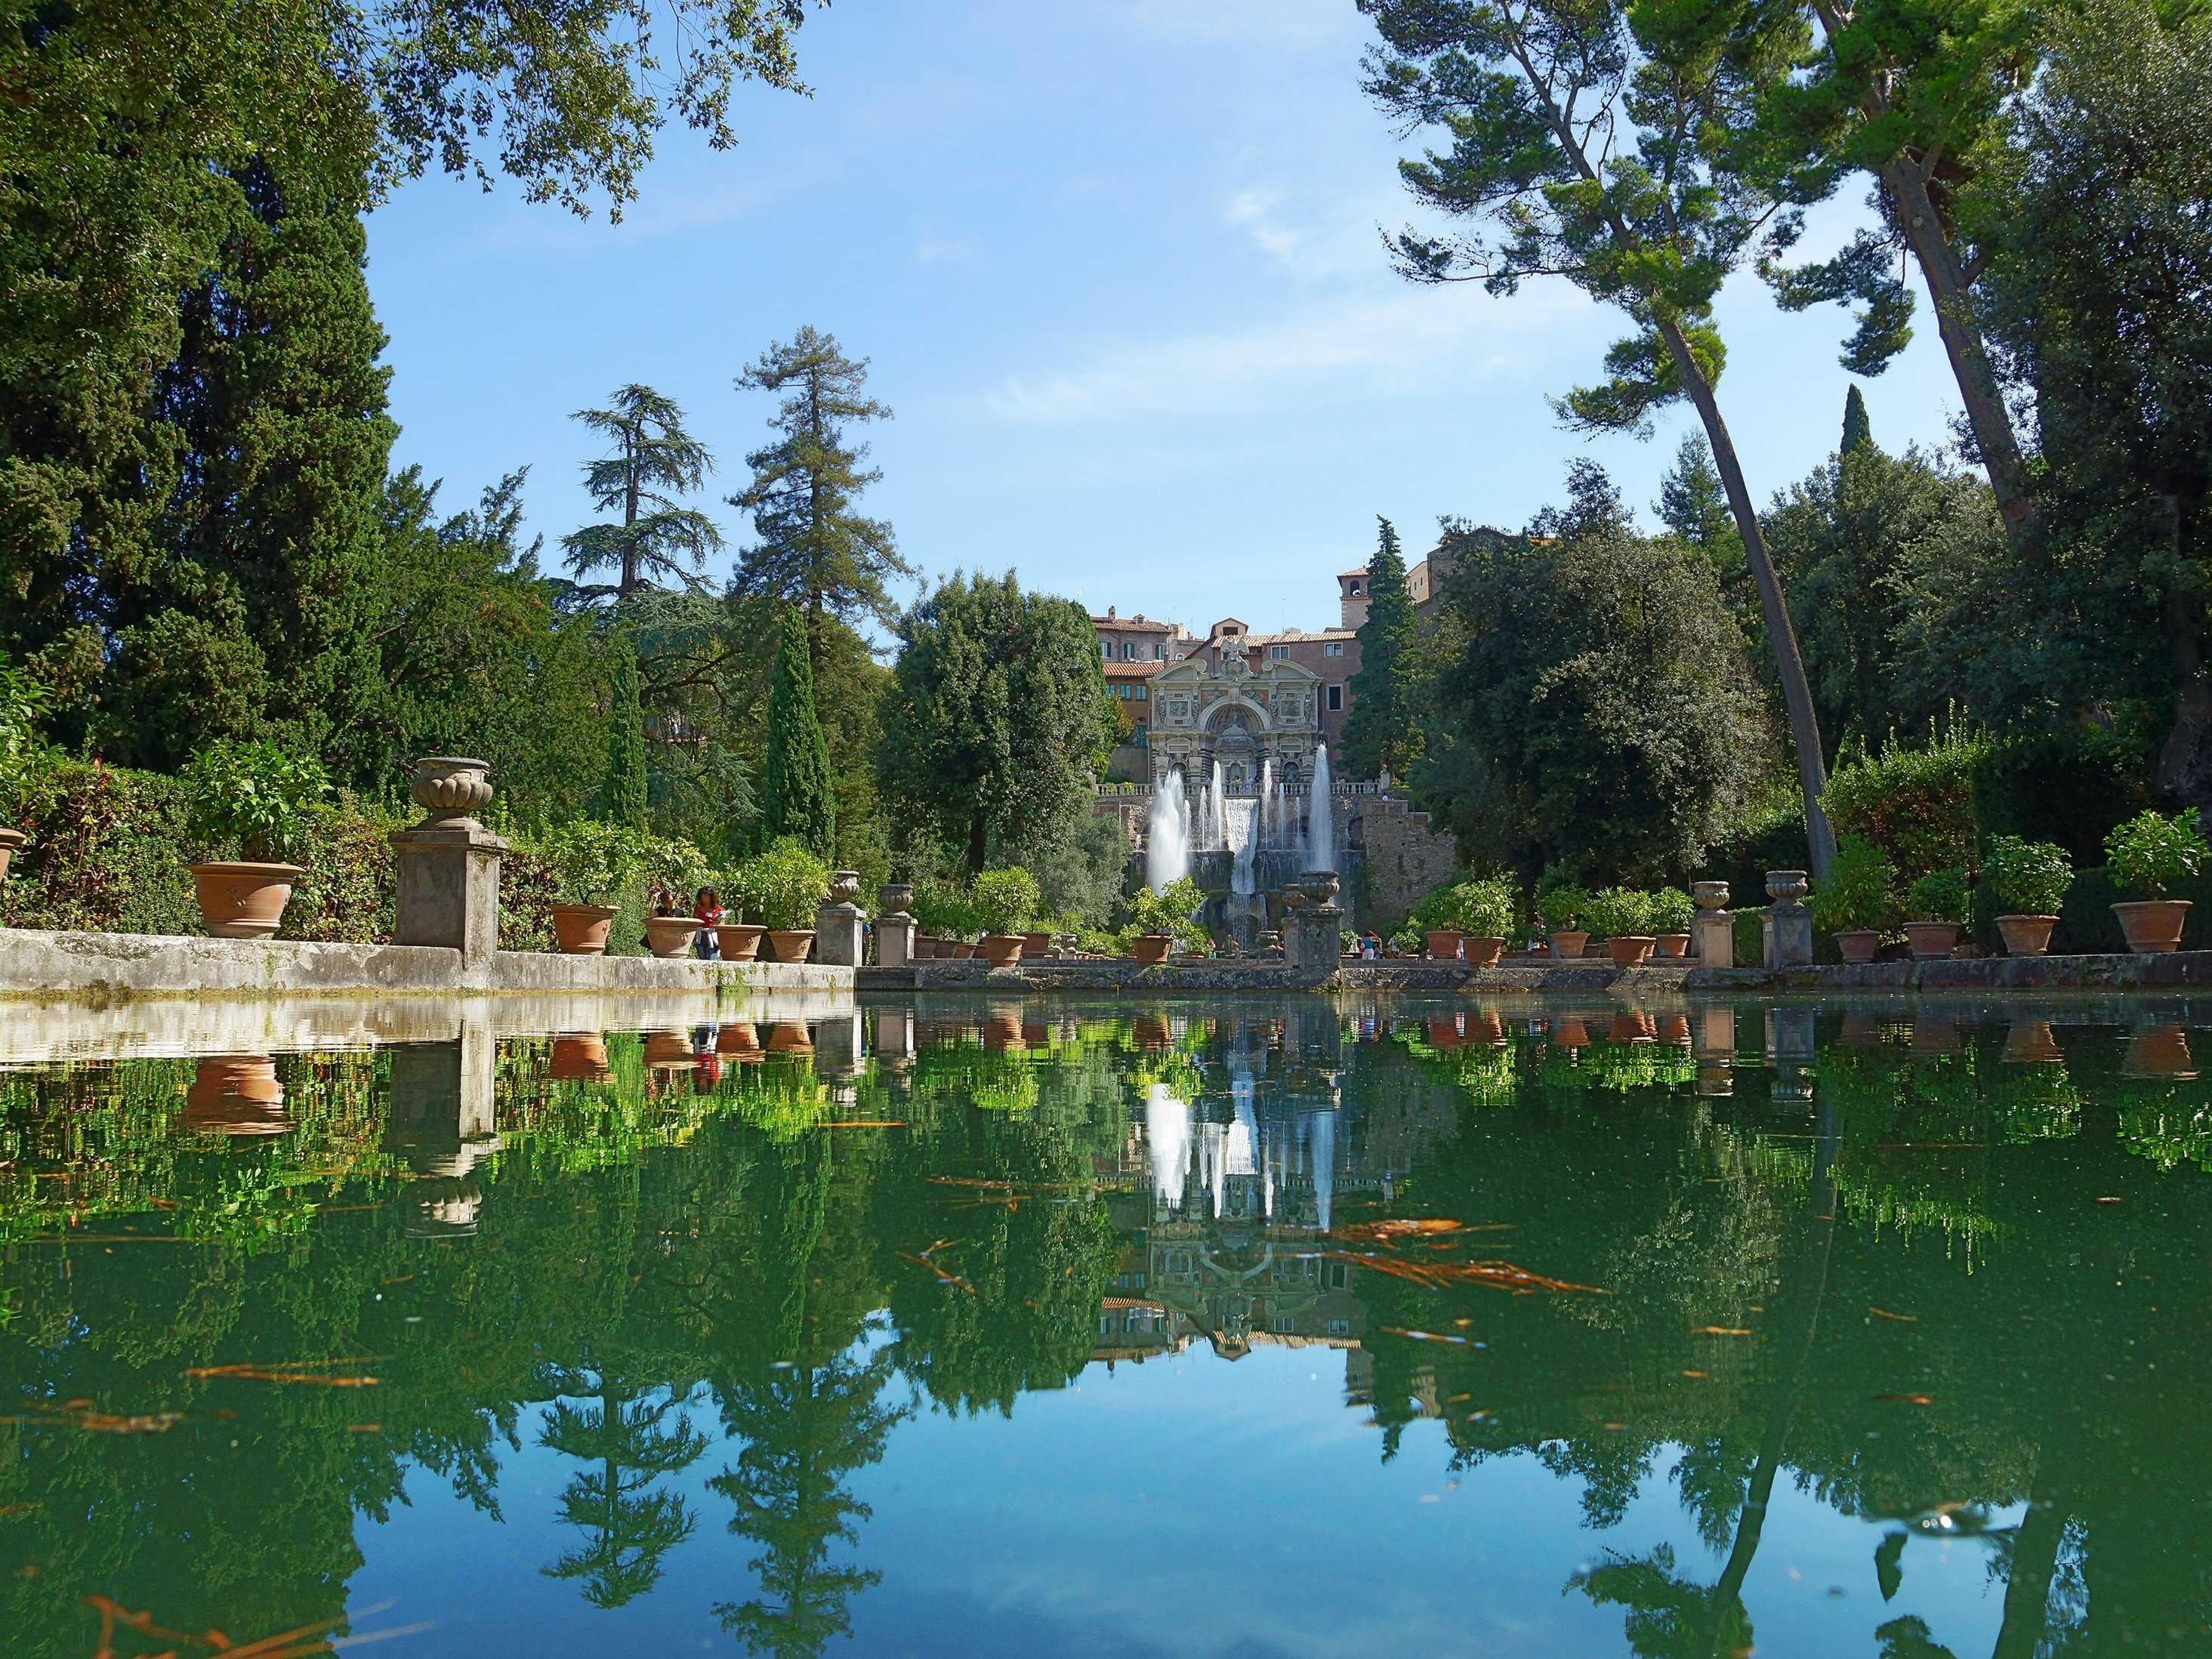 Stroll through the peaceful Renaissance gardens of the Villa d'Este in Tivoli.